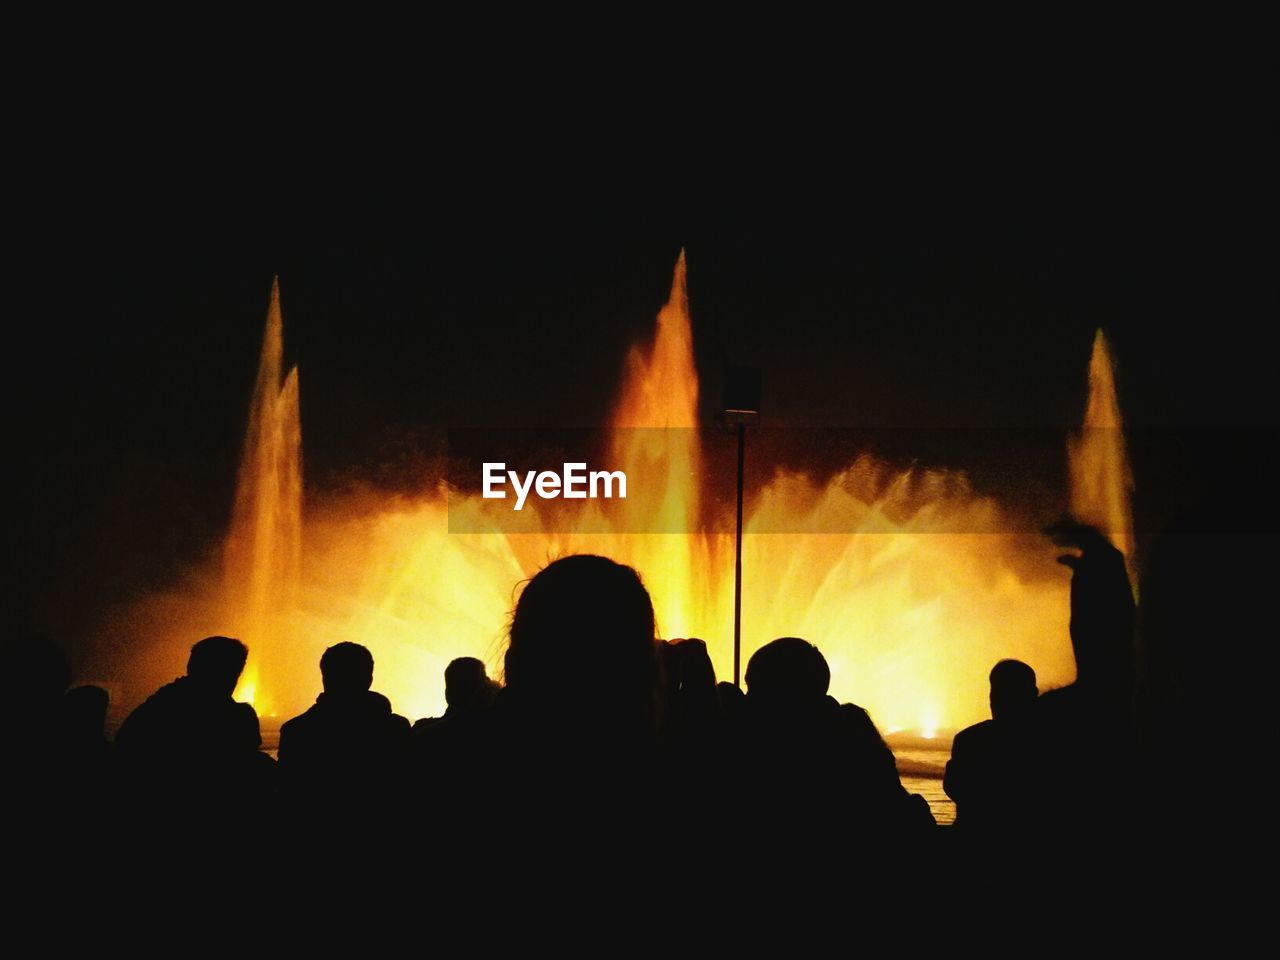 Silhouettes of people by illuminated fountain